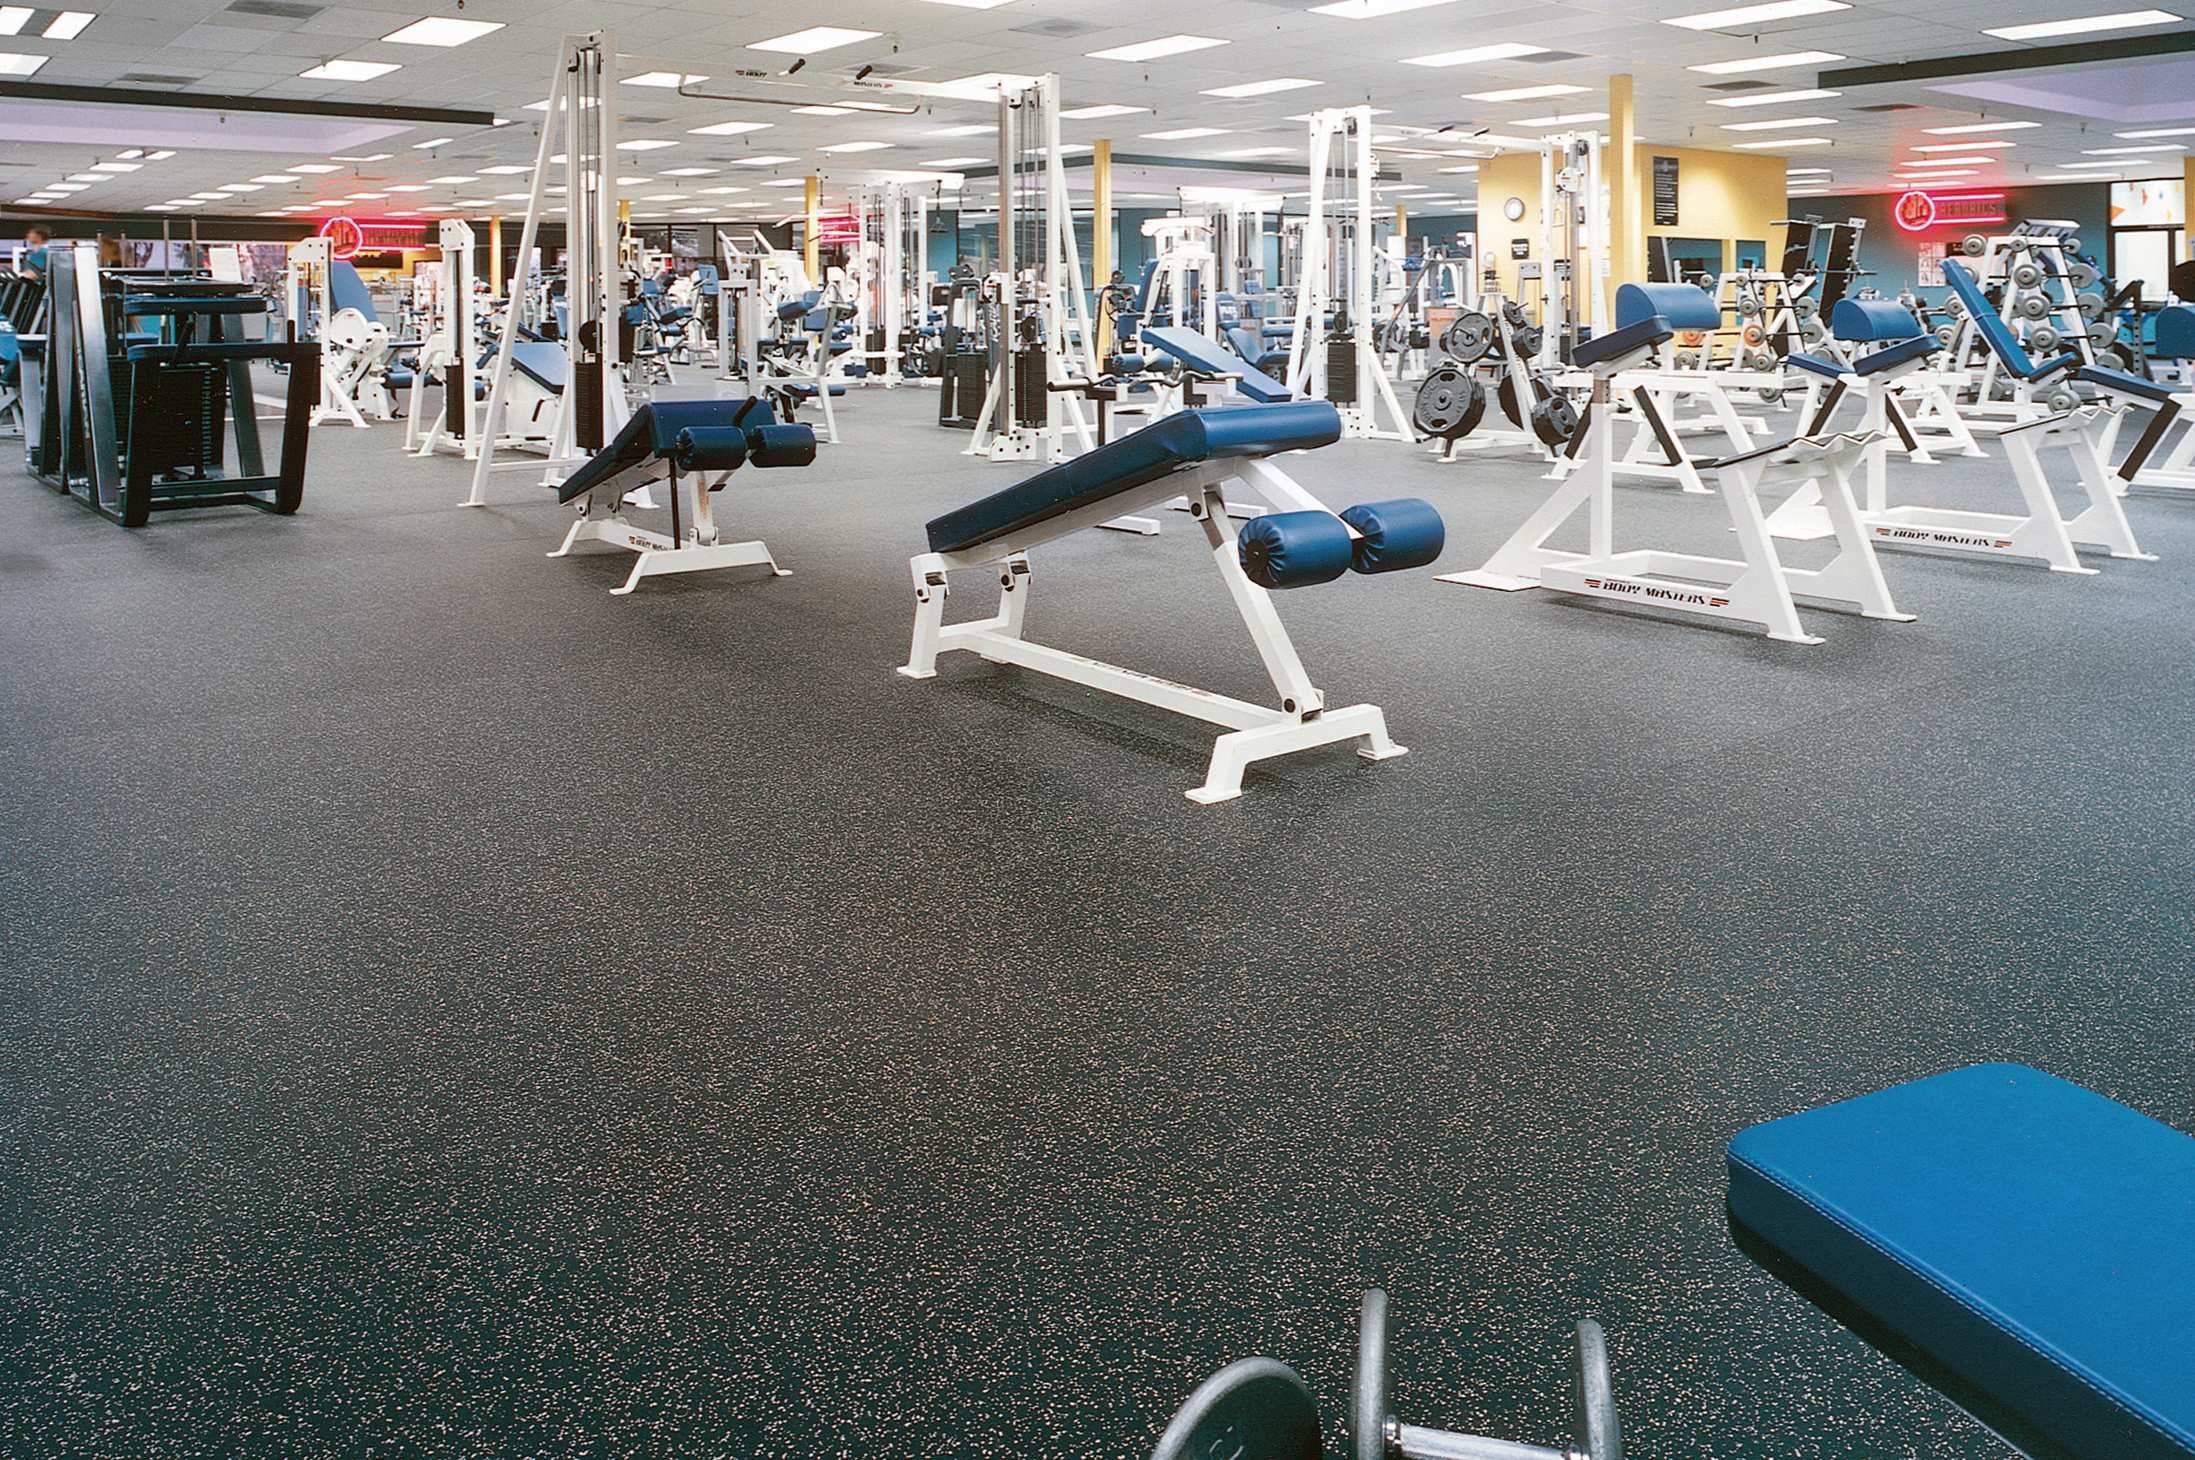 Rubber sports flooring rubberdeck rubber sports floors in rolls rubberized gym floor tiles ceramic or porcelain tile flooring is very durable as well as an excellent investment in your h dailygadgetfo Image collections